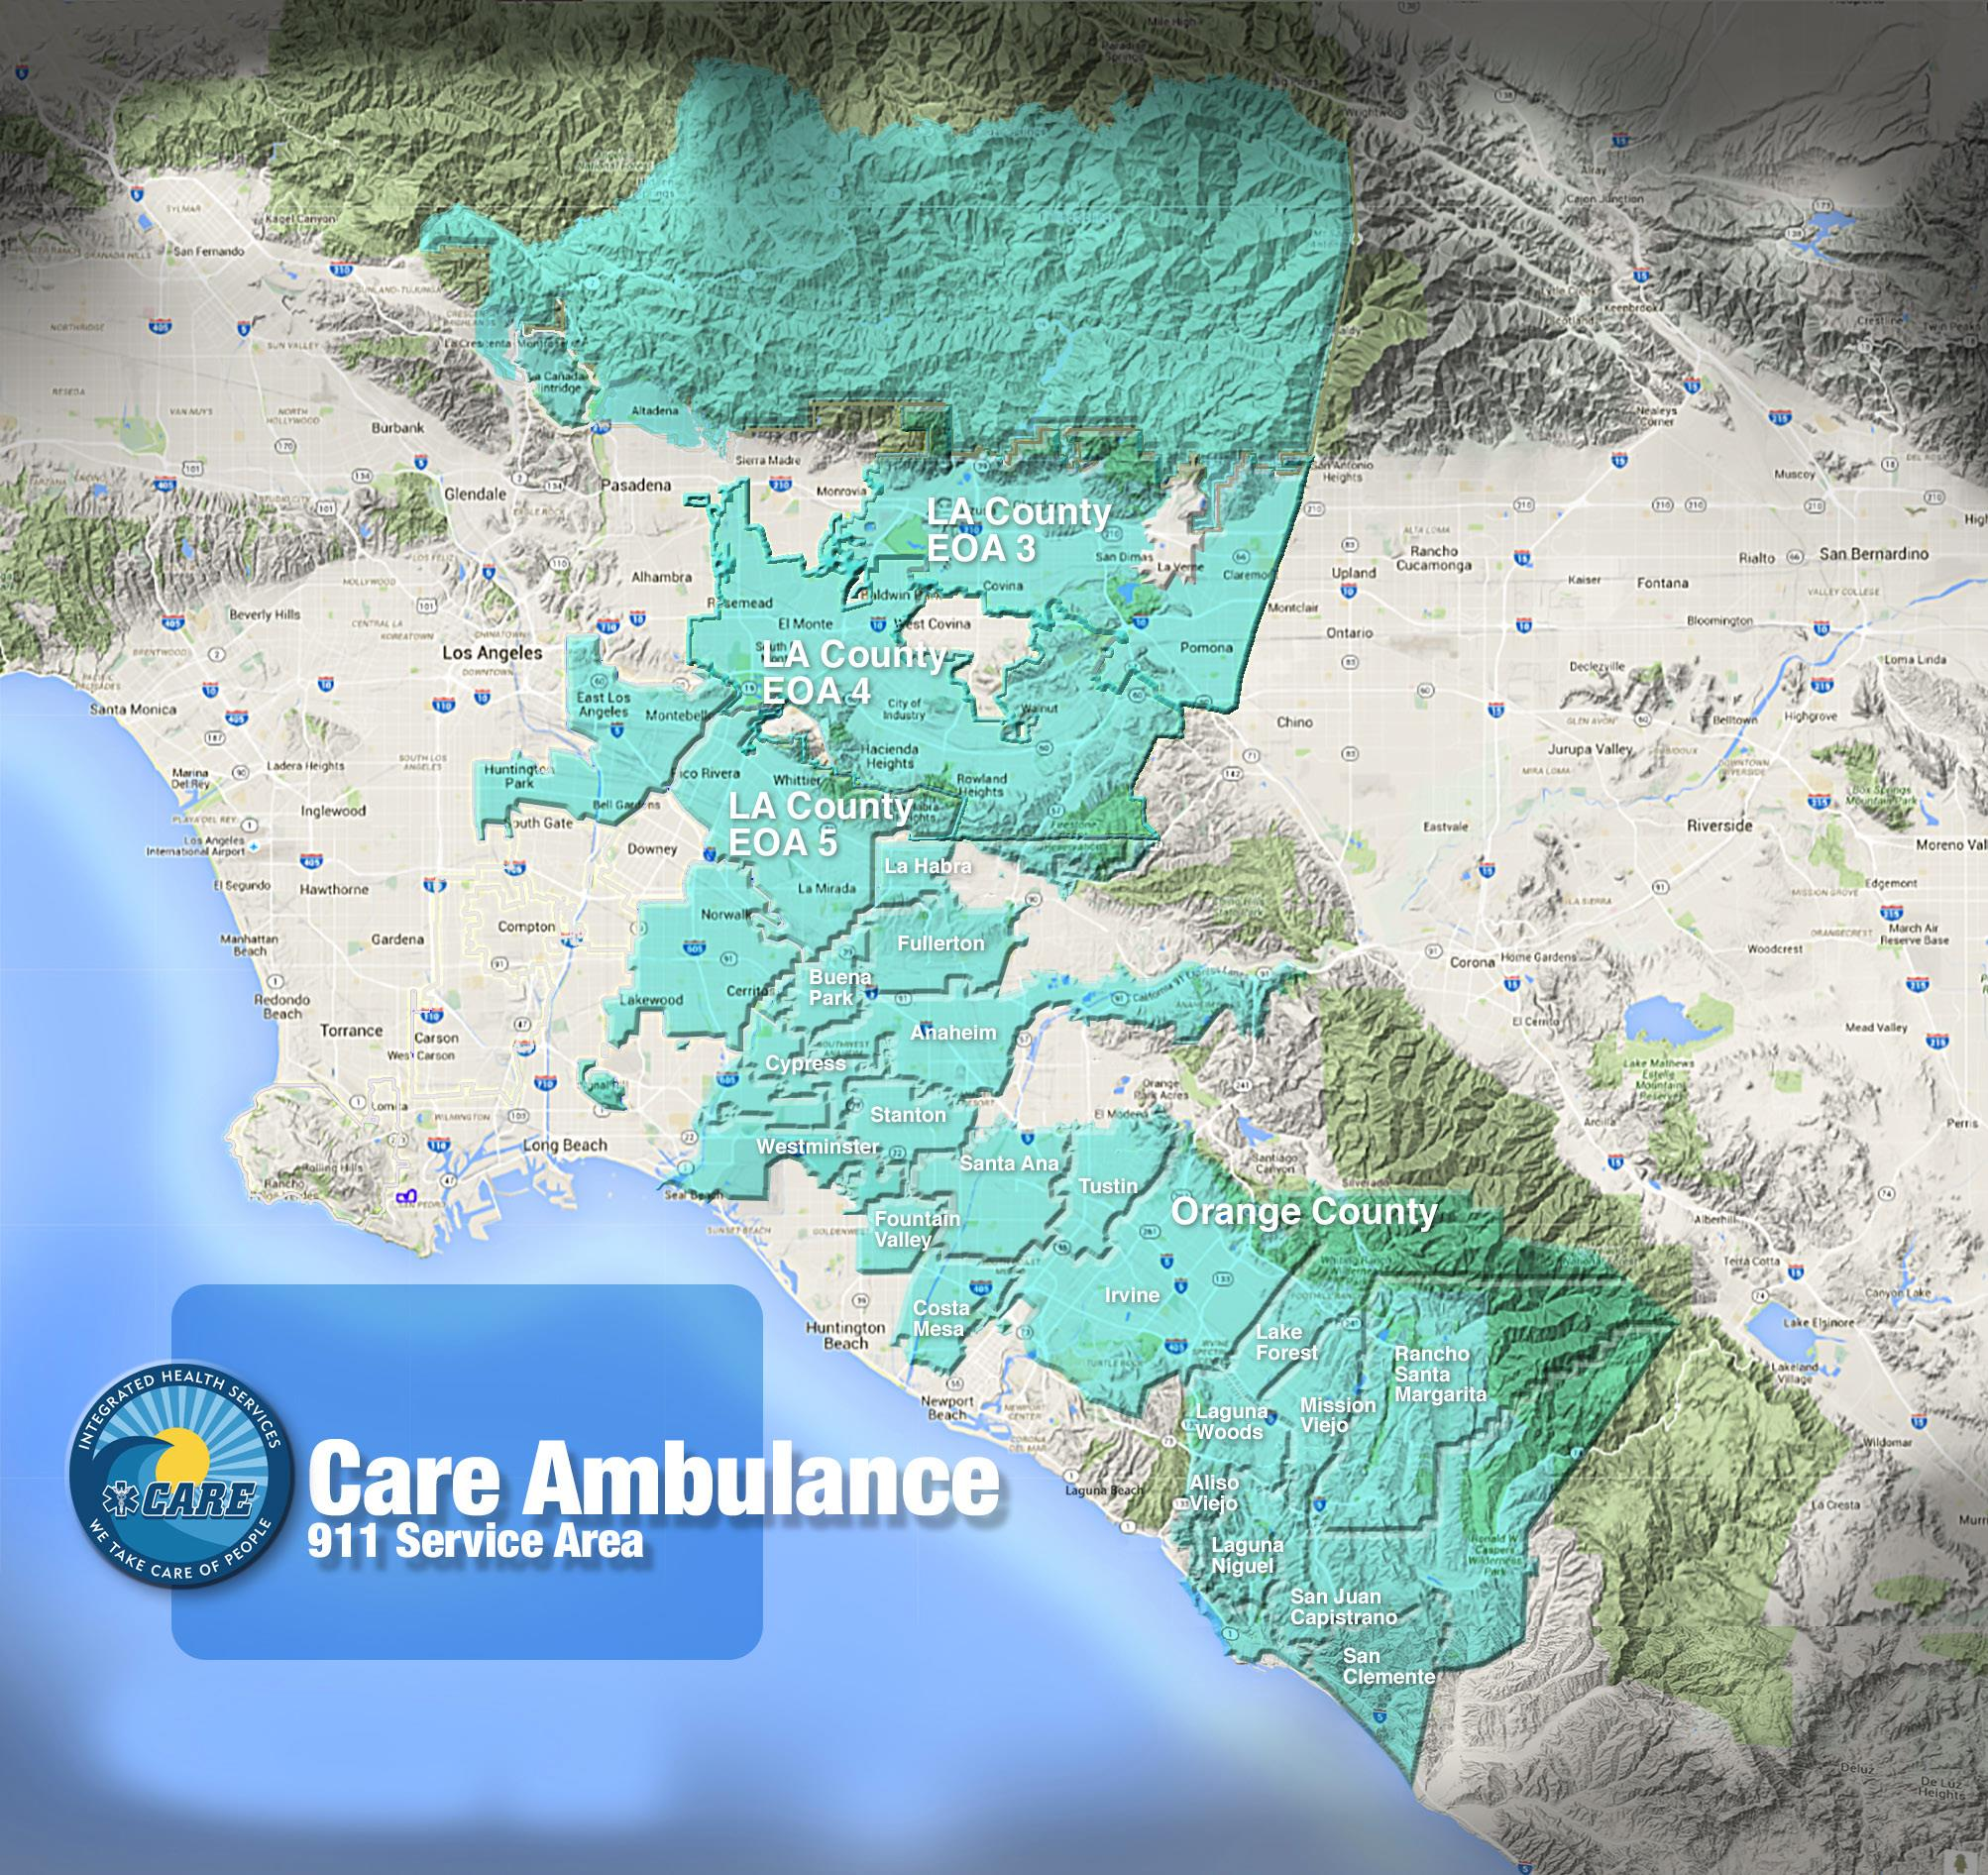 Care Ambulance Service | Home